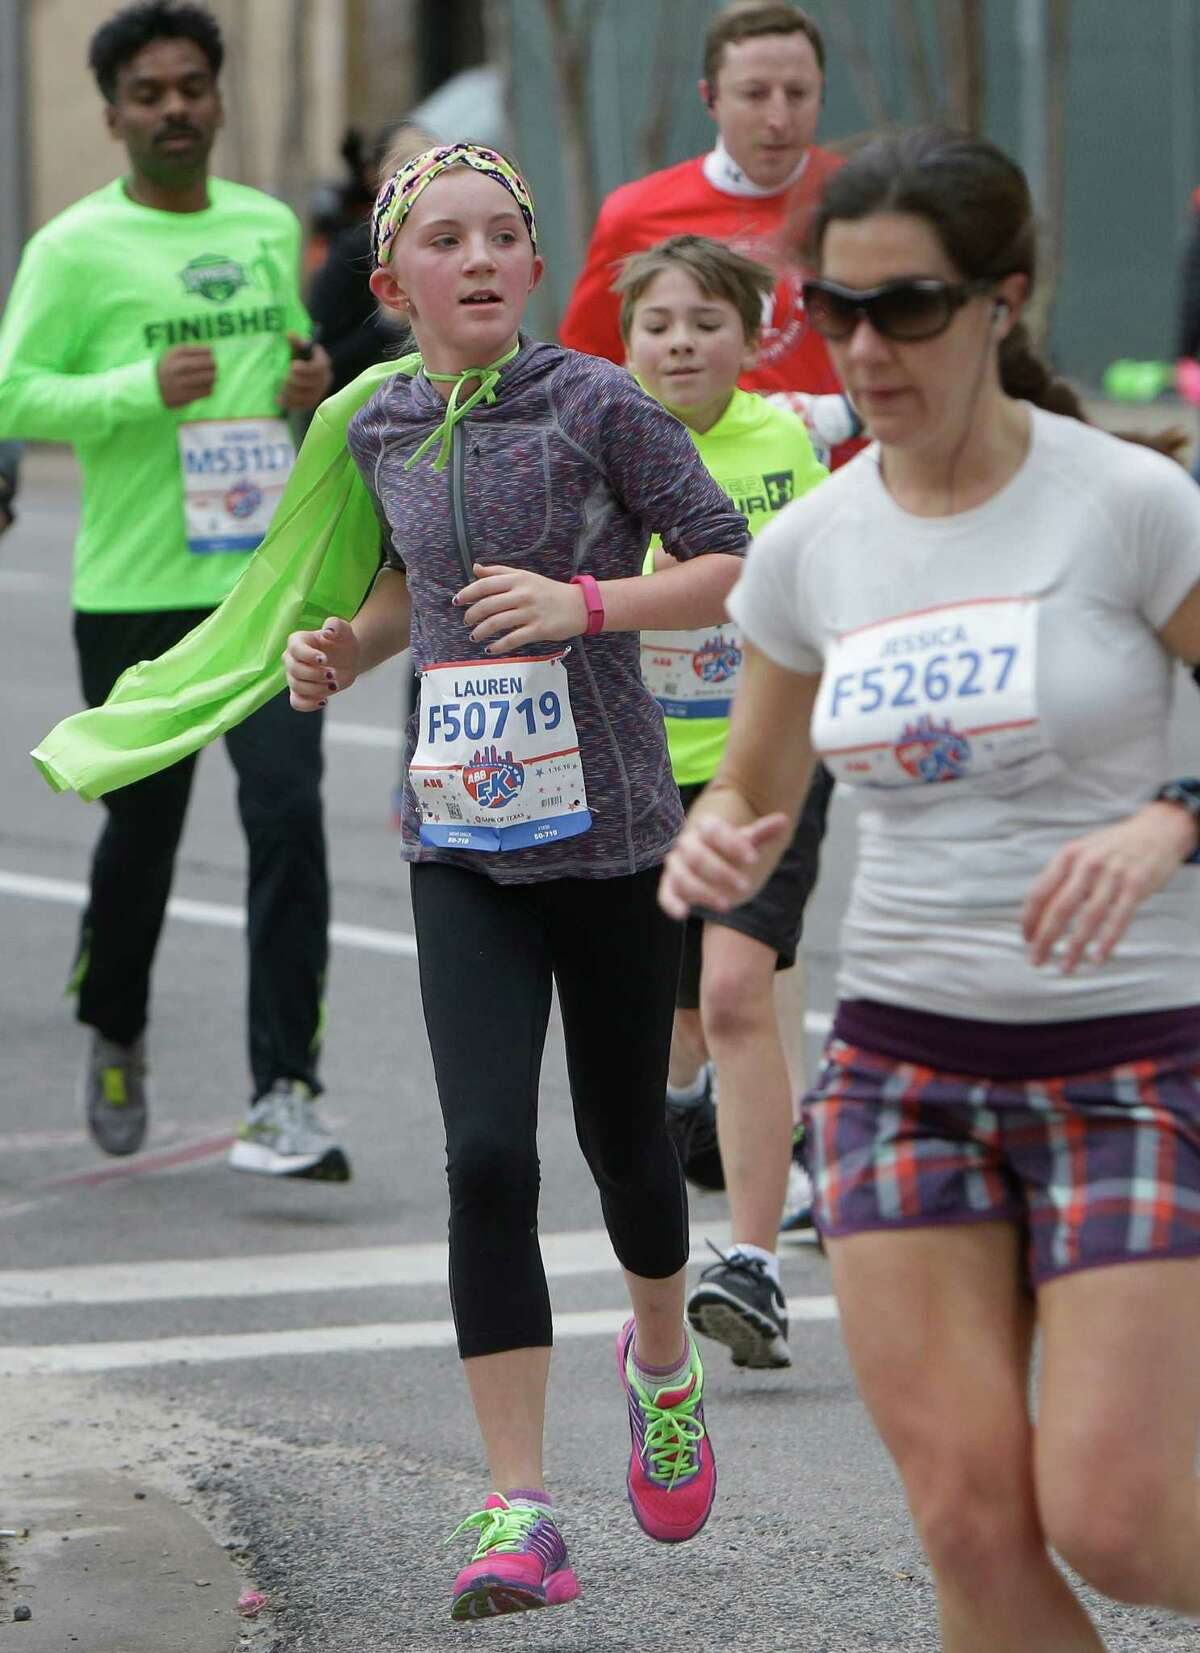 People participate in the ABB 5K in downtown Houston Saturday, Jan. 16, 2016.